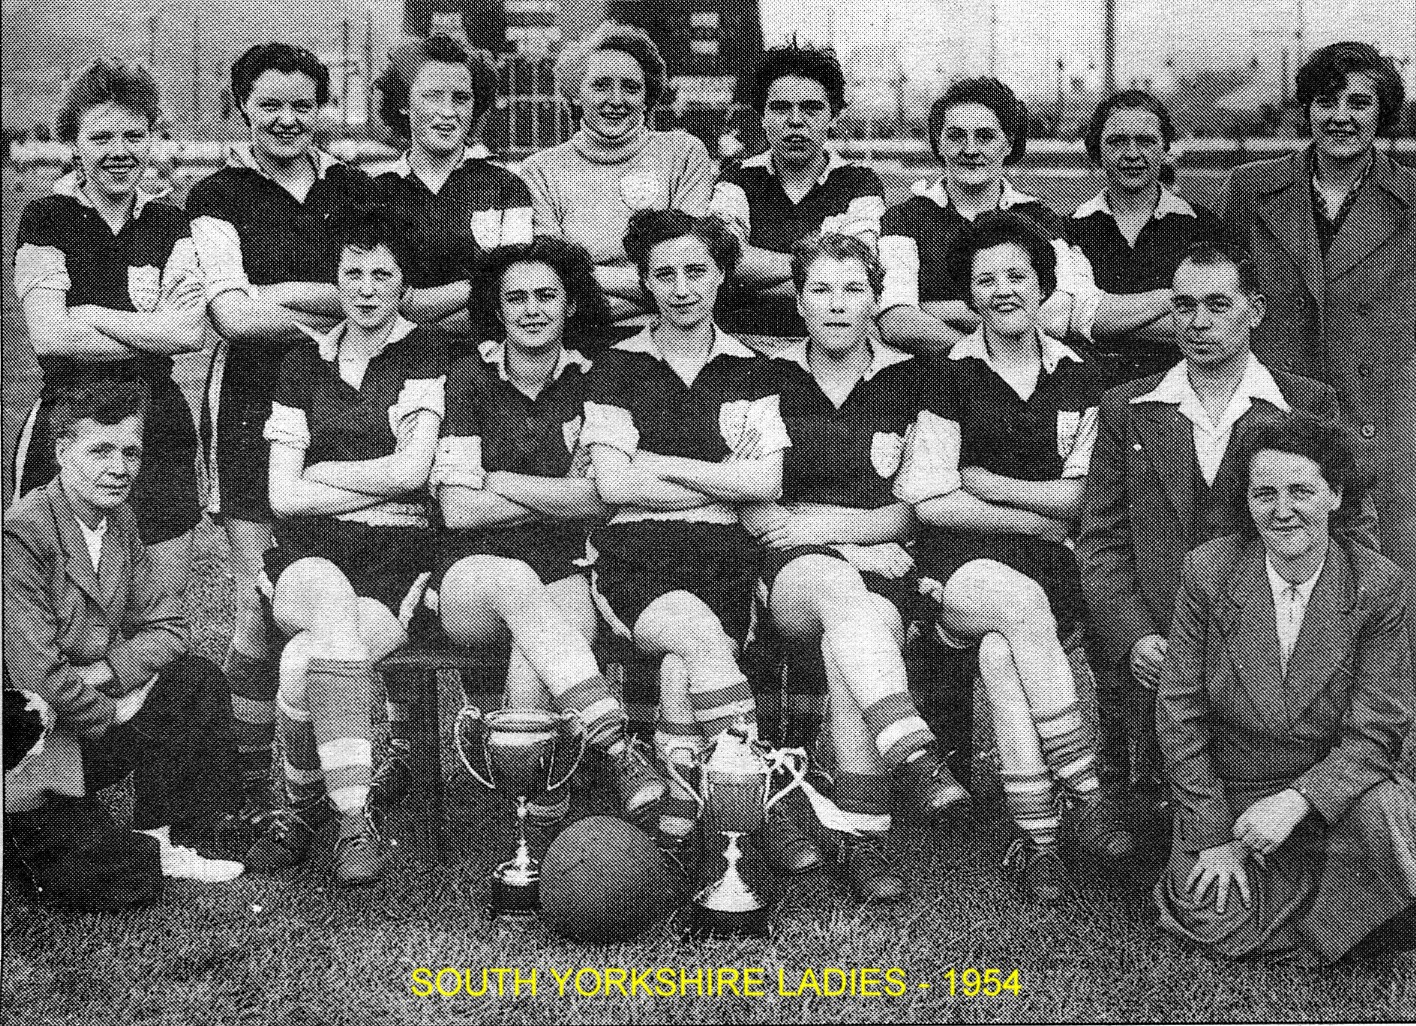 South Yorkshire Ladies 1954 - South Yorkshire Ladies 1954, Provided by Chris Eyre.